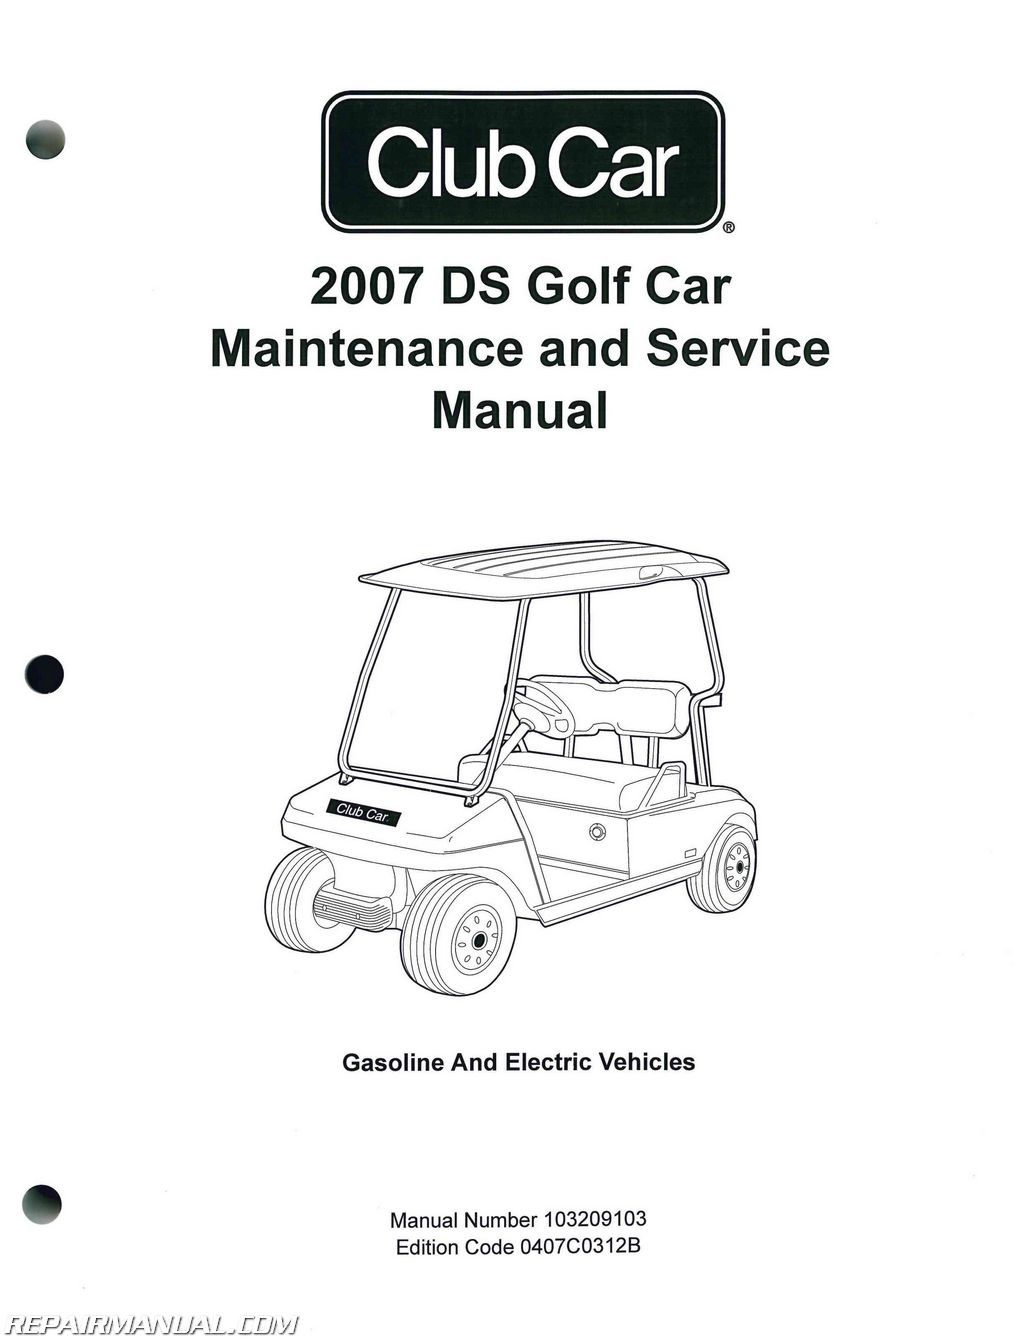 2007 club car ds golf car gas and electric golf cart. Black Bedroom Furniture Sets. Home Design Ideas